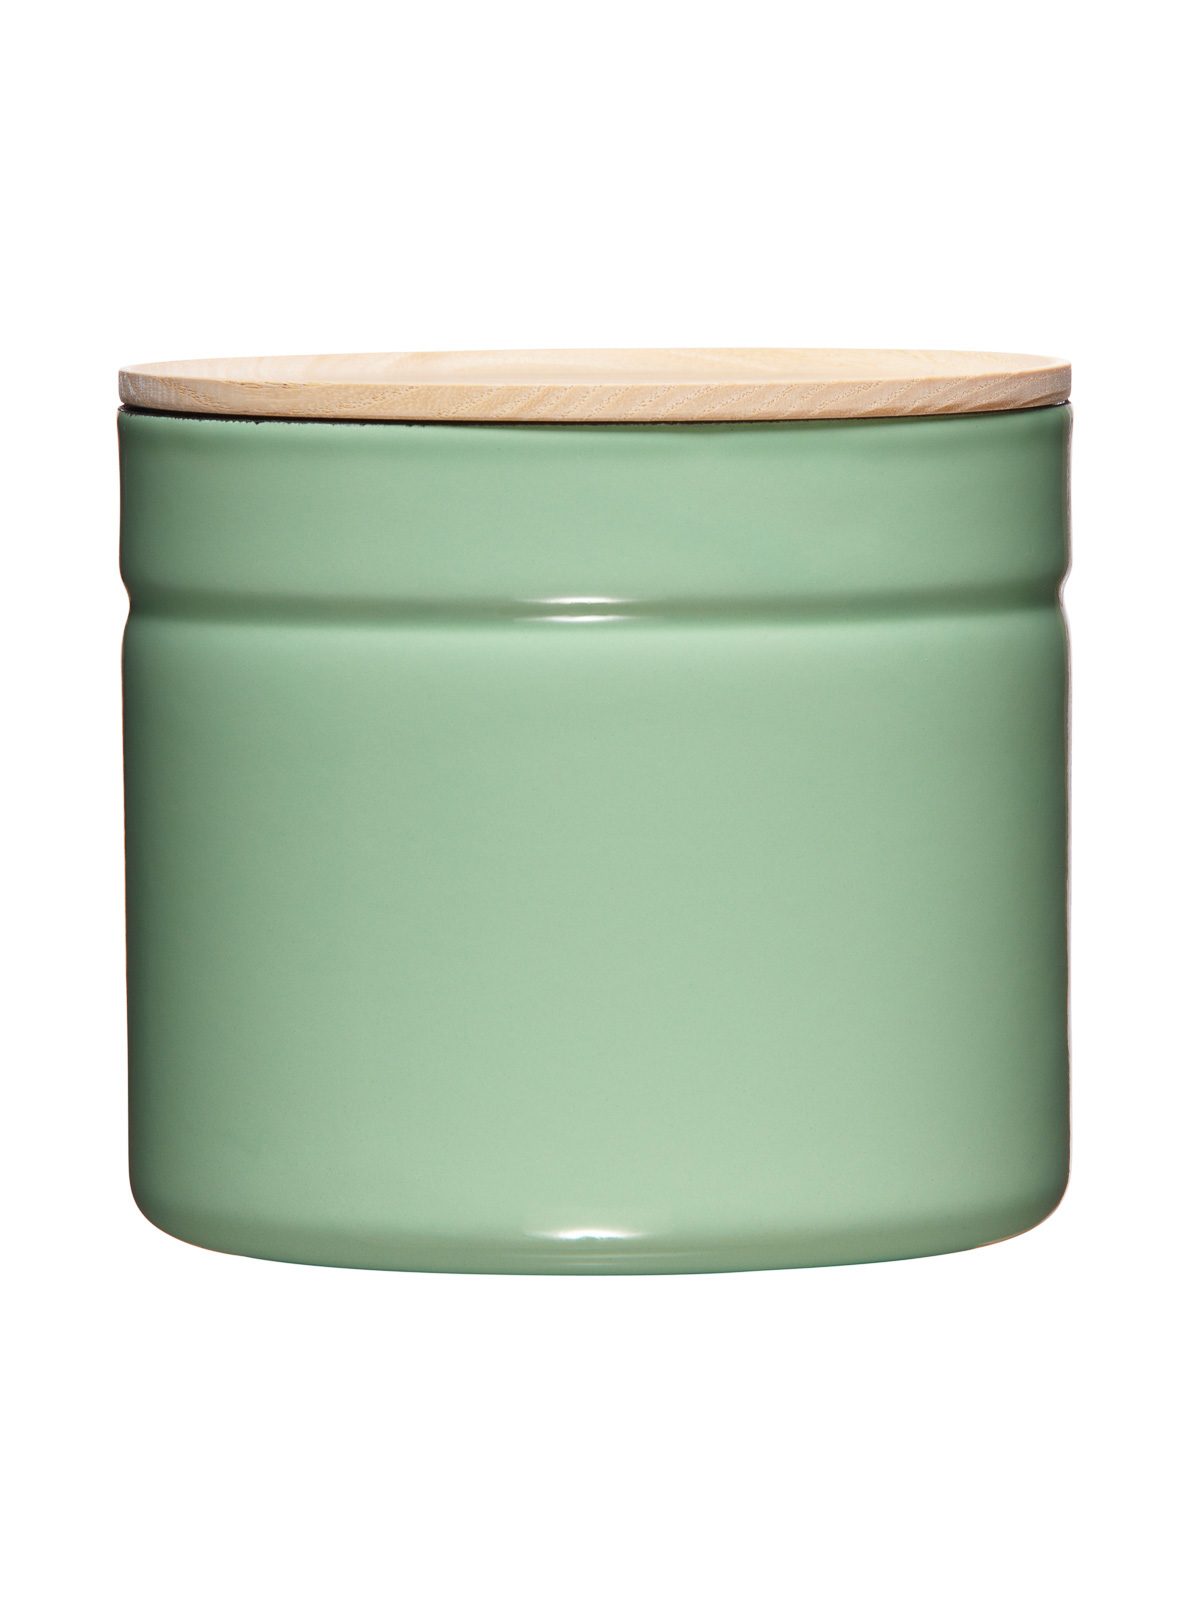 storage container green 1390 ml (2174-202)